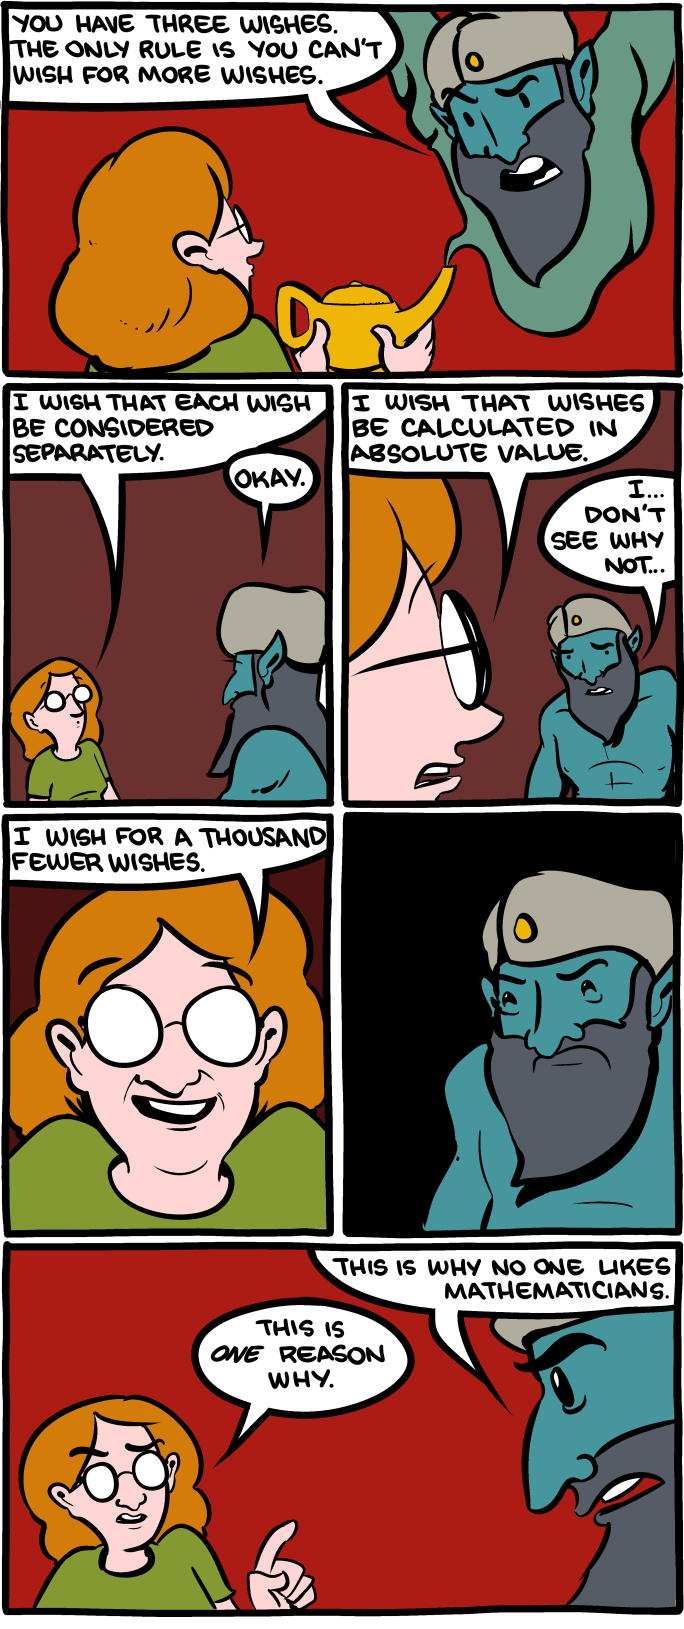 More SMBC for you. Because.